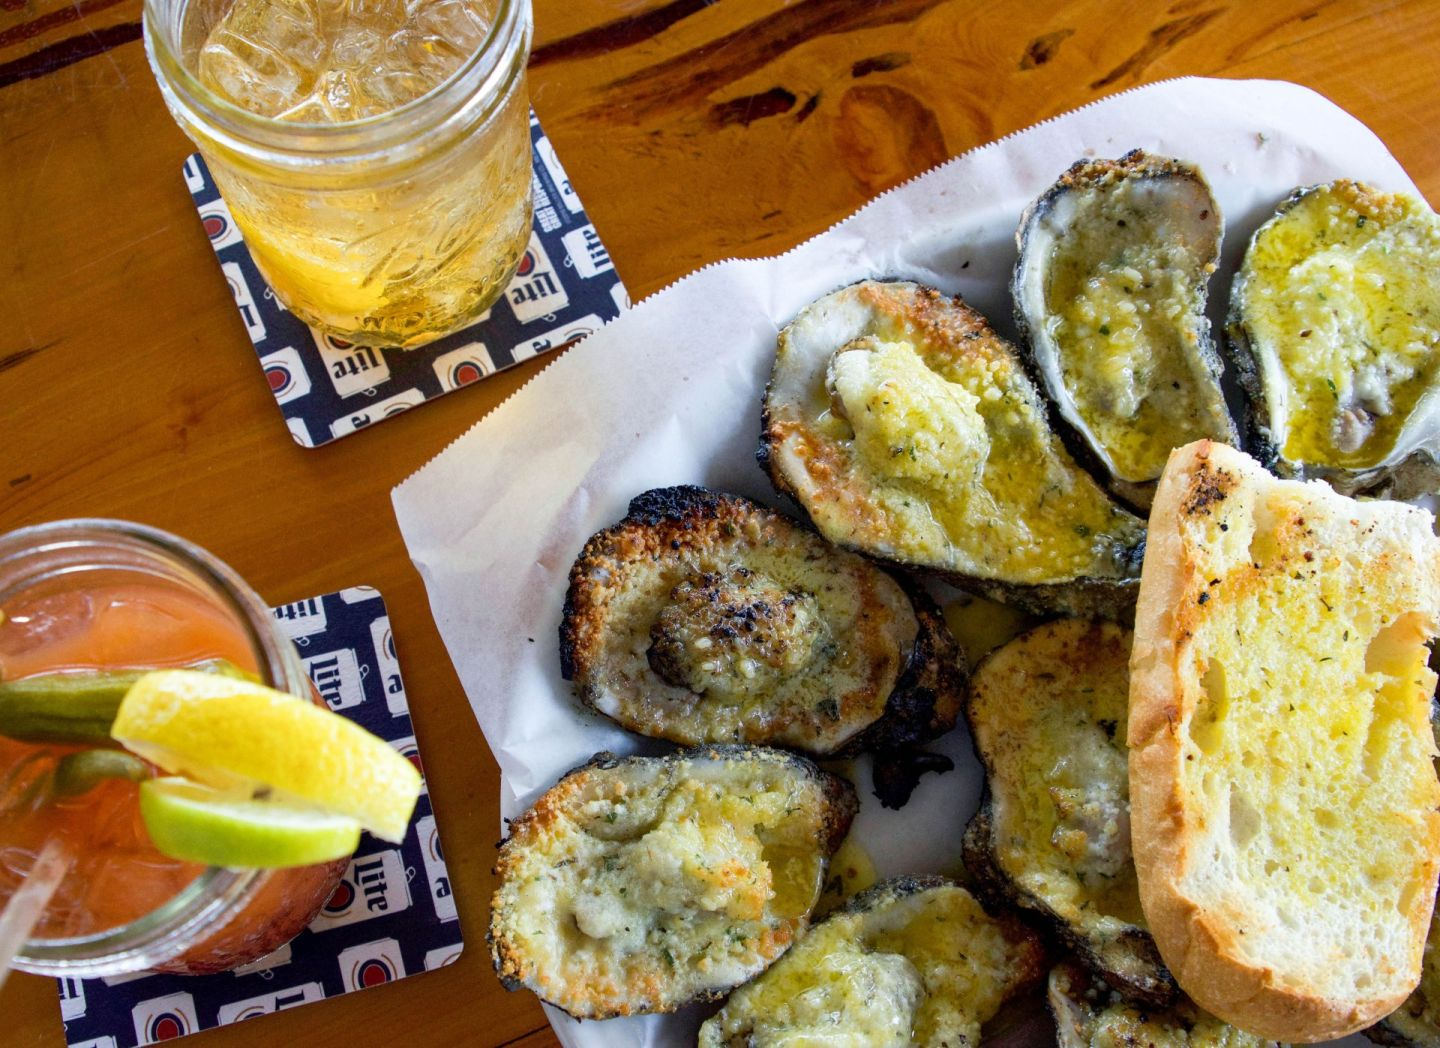 weekend on gulf coast of alabama - mobile bay - mobile alabama - bluegill restaurant - flaming oysters